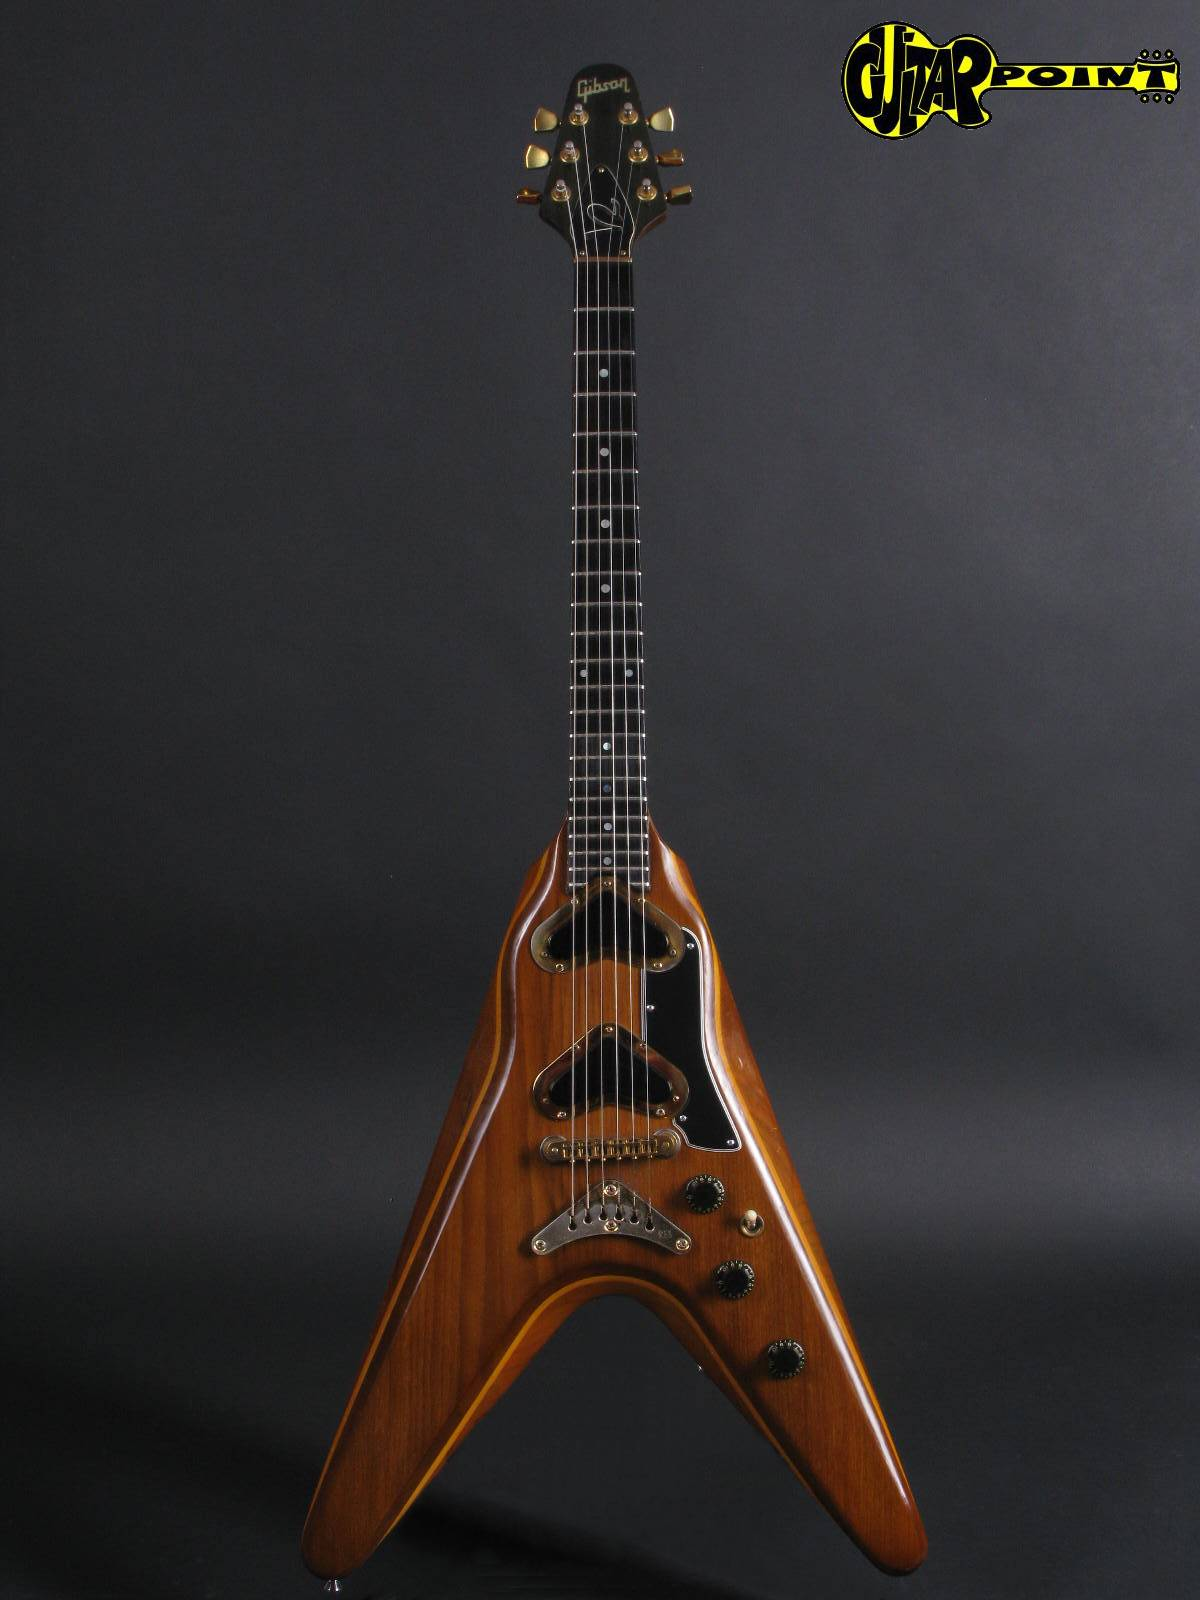 gibson flying v 2 1979 natural guitar for sale guitarpoint. Black Bedroom Furniture Sets. Home Design Ideas